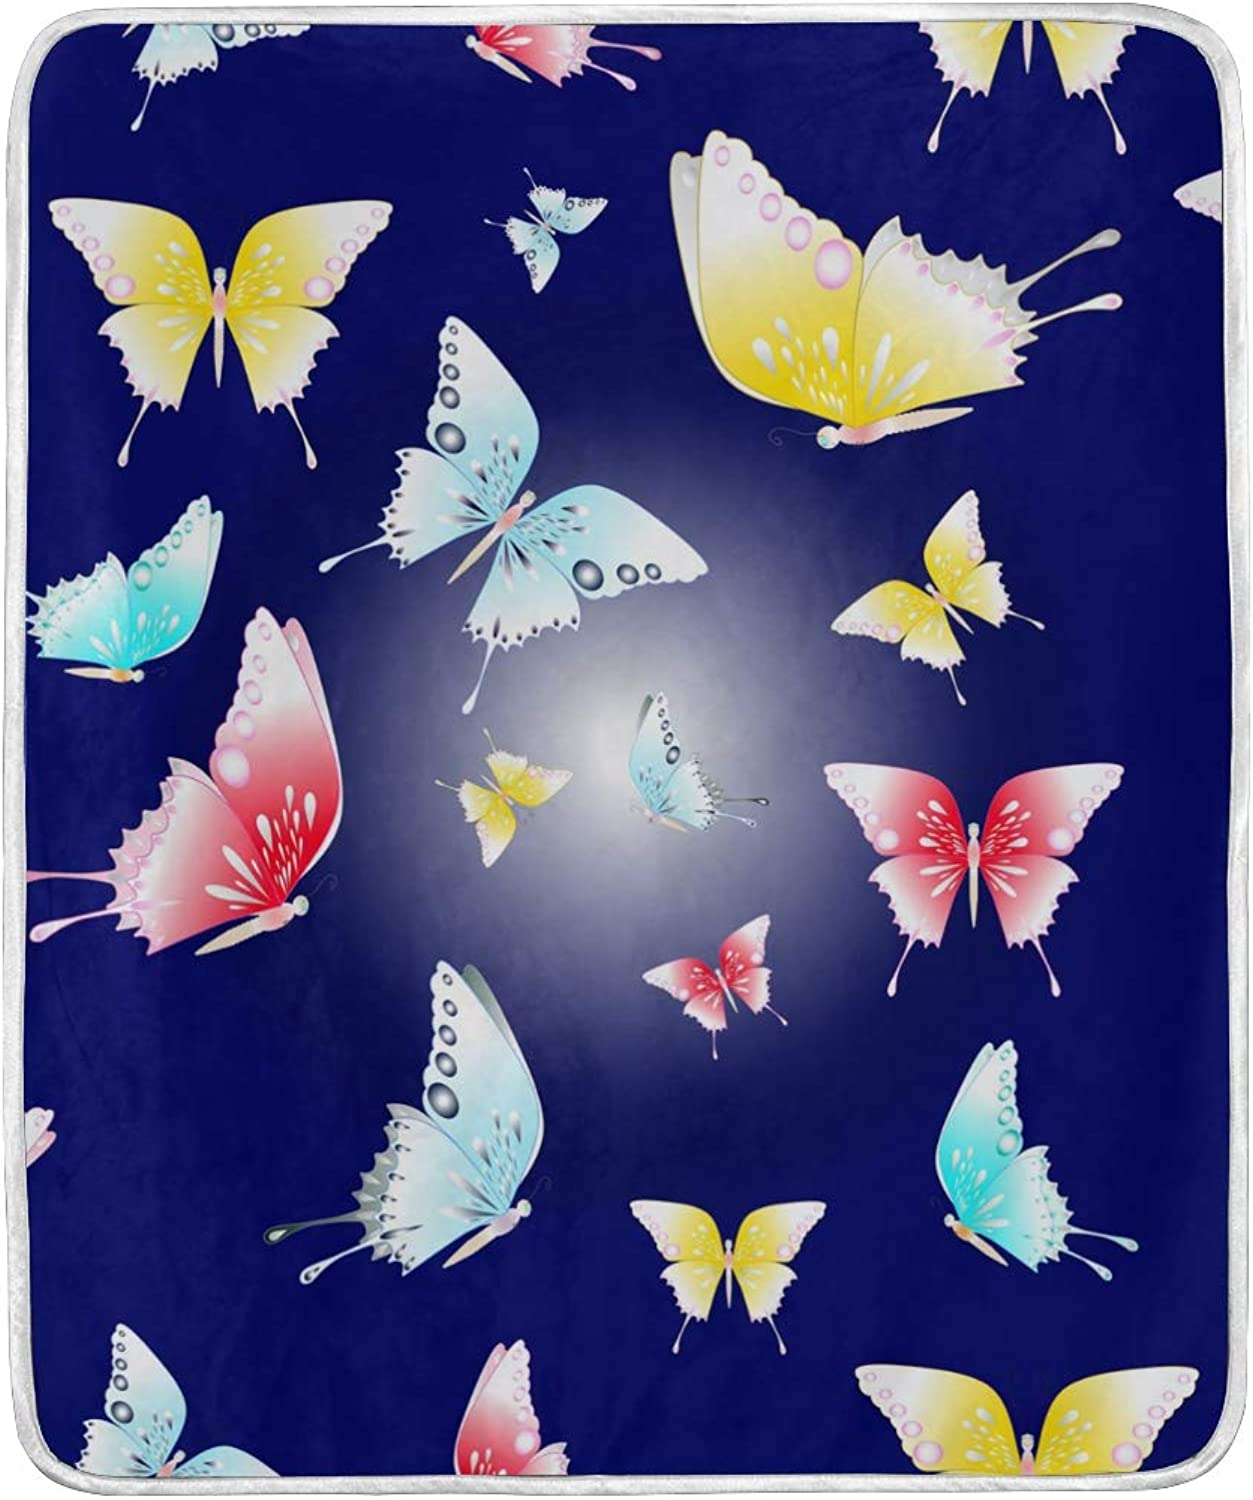 Vintage colorful Butterfly Throw Blanket Soft Nap Couch Bed Blankets for Kid Boy Girl Women Men 50x60 inch